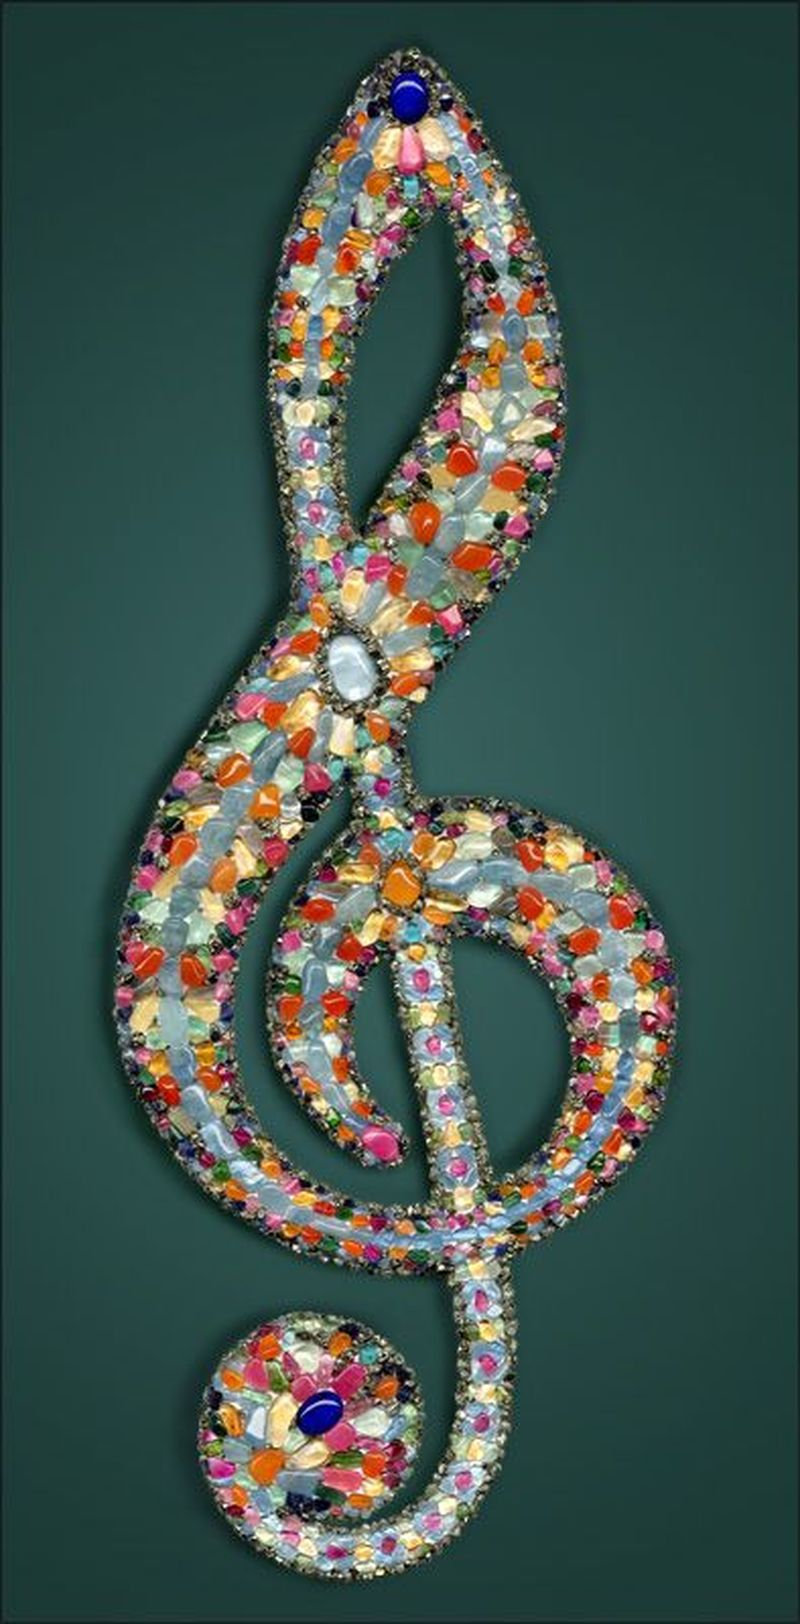 Adorable diy mosaic craft ideas to beautify your home decoration 30